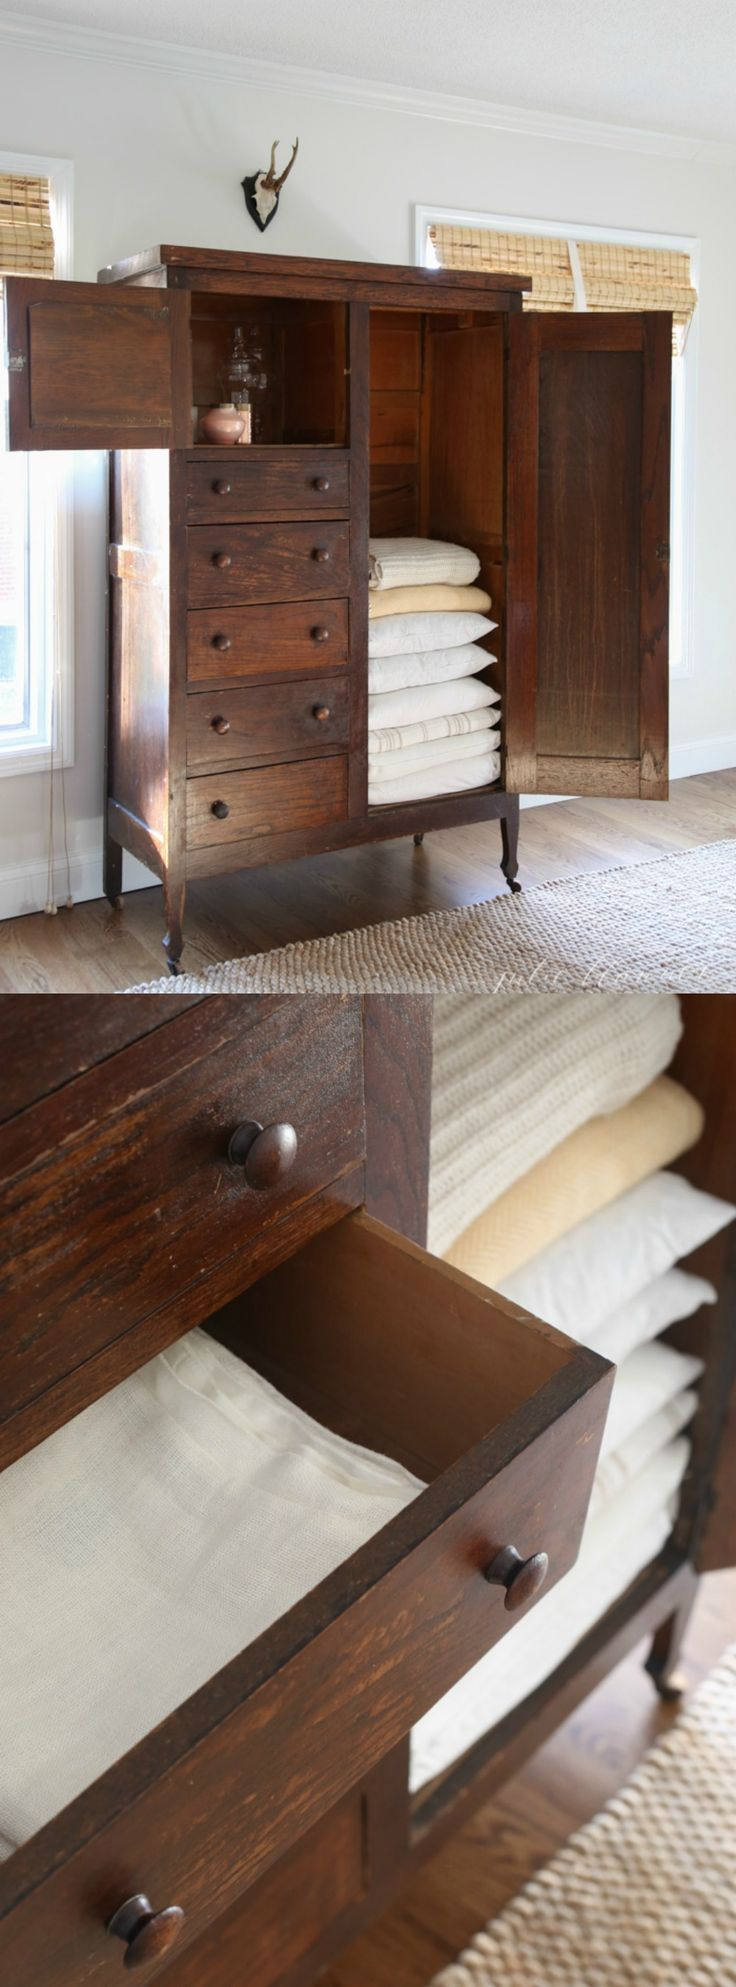 Convert a wardrobe or armoire into a linen cabinet to store extra blankets, pillows, pillow covers, games and more! Perfect for old homes or apartment living.